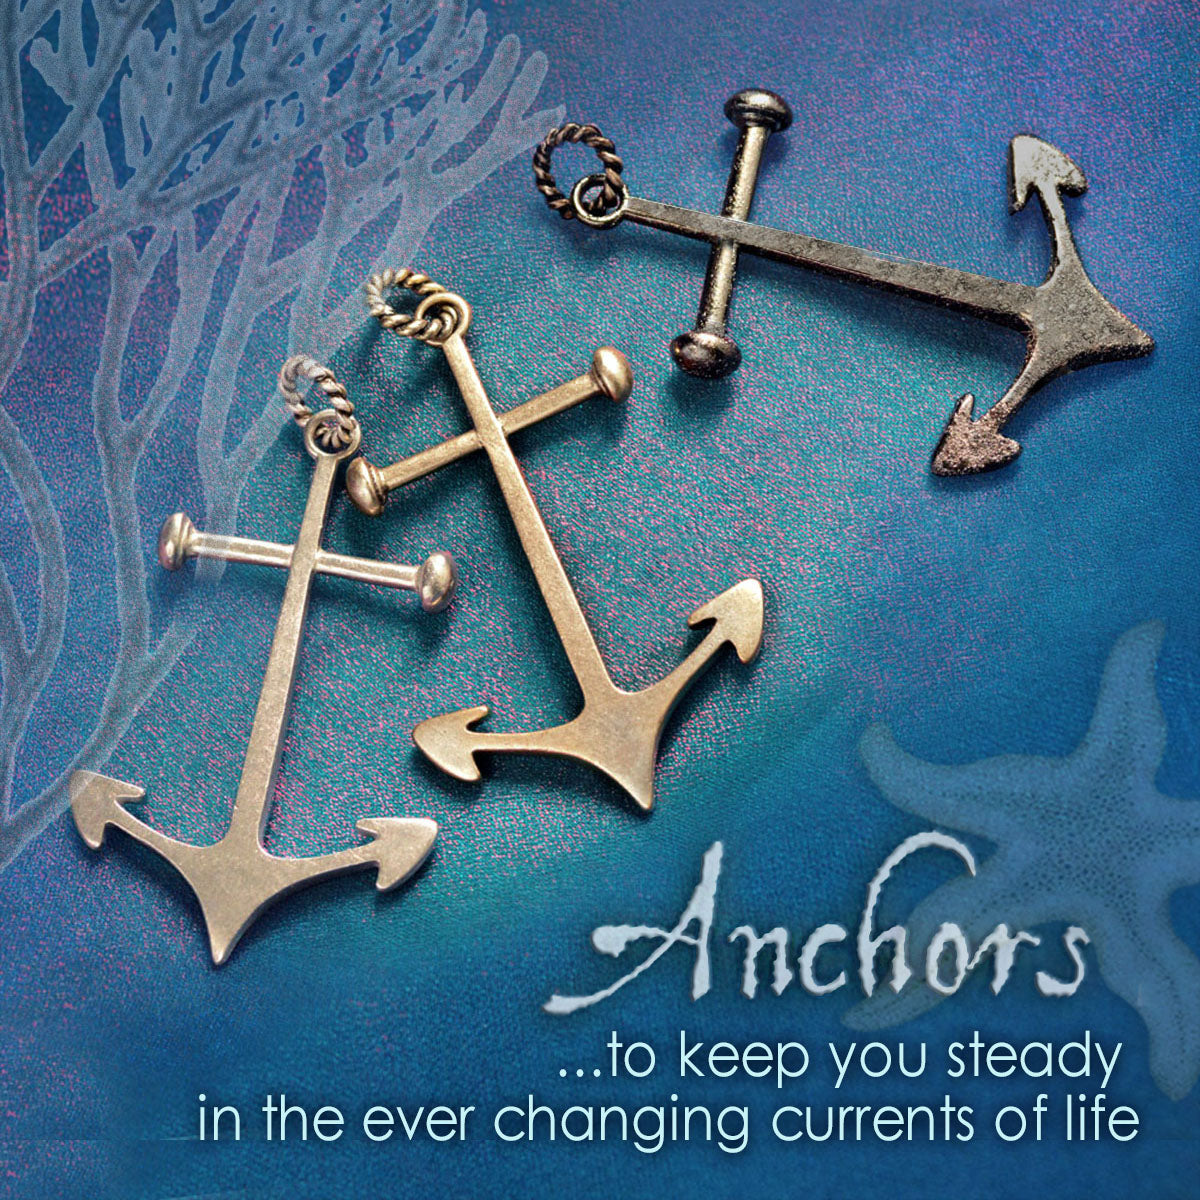 Anchor Pendant for life's changing currents